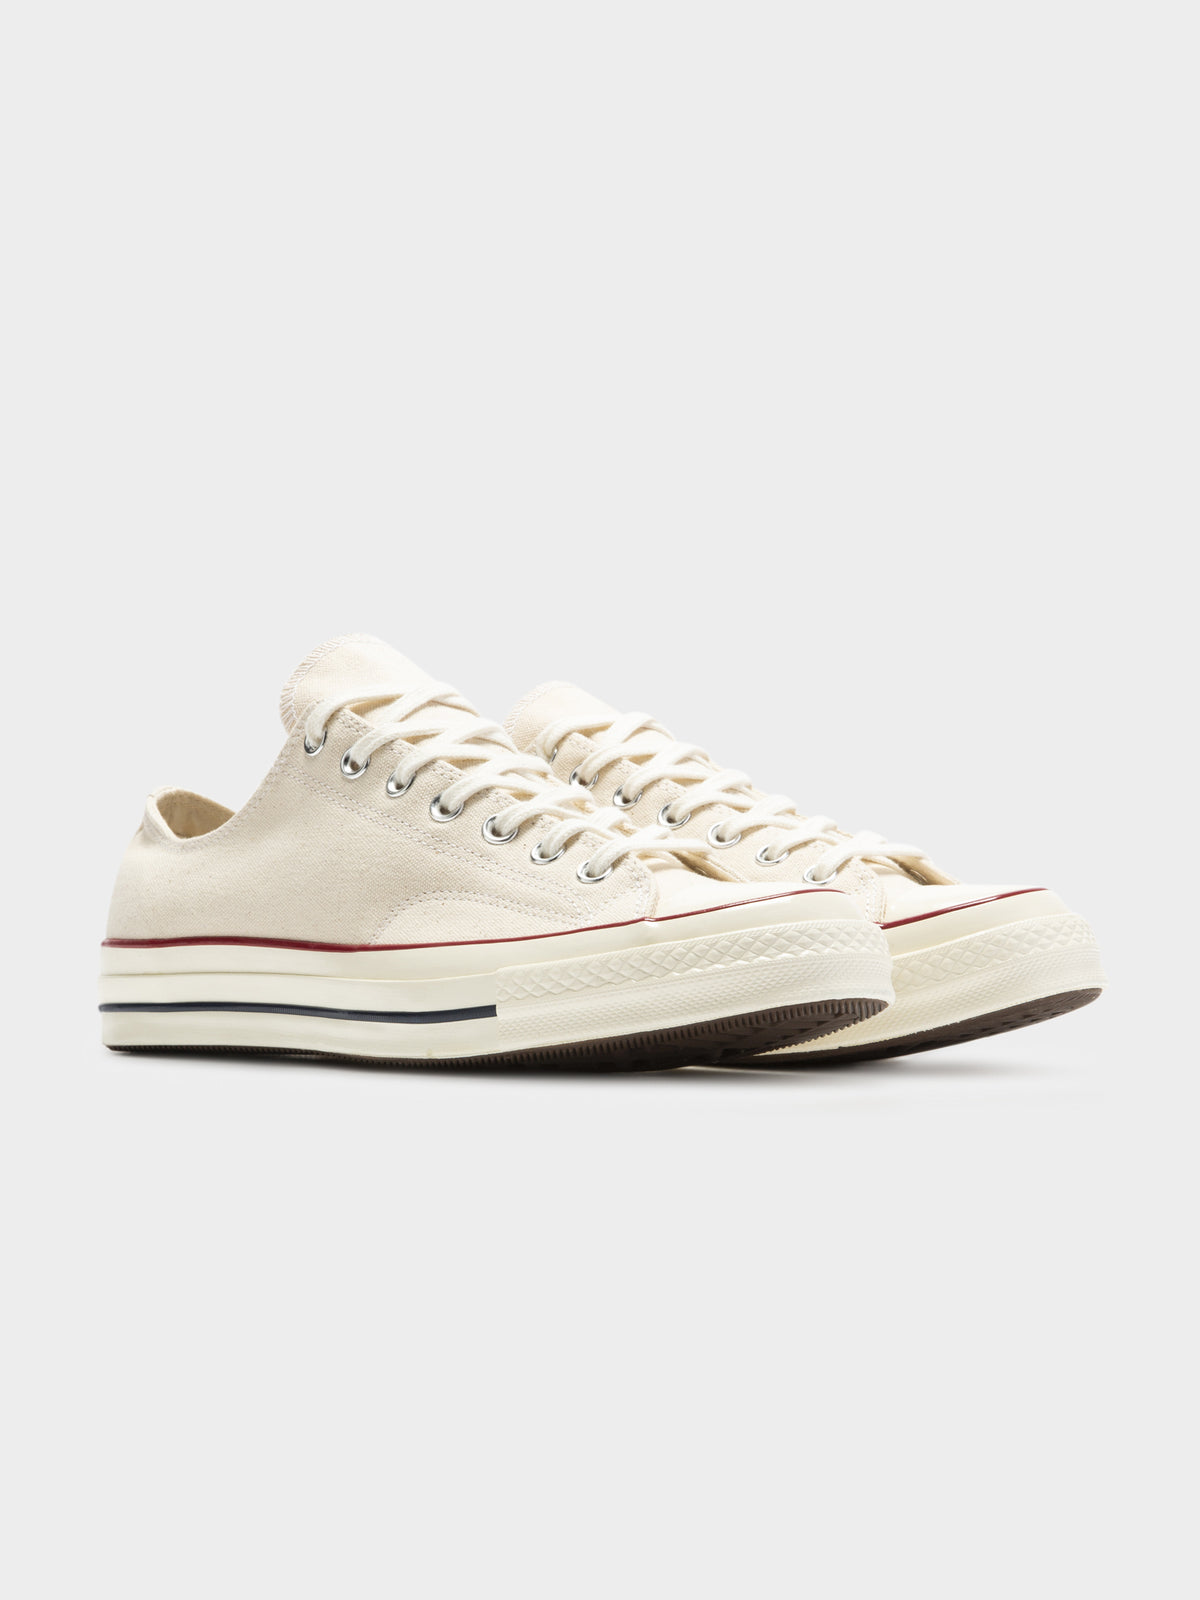 Unisex Chuck Taylor 70 Parchment Low Top Sneakers in White